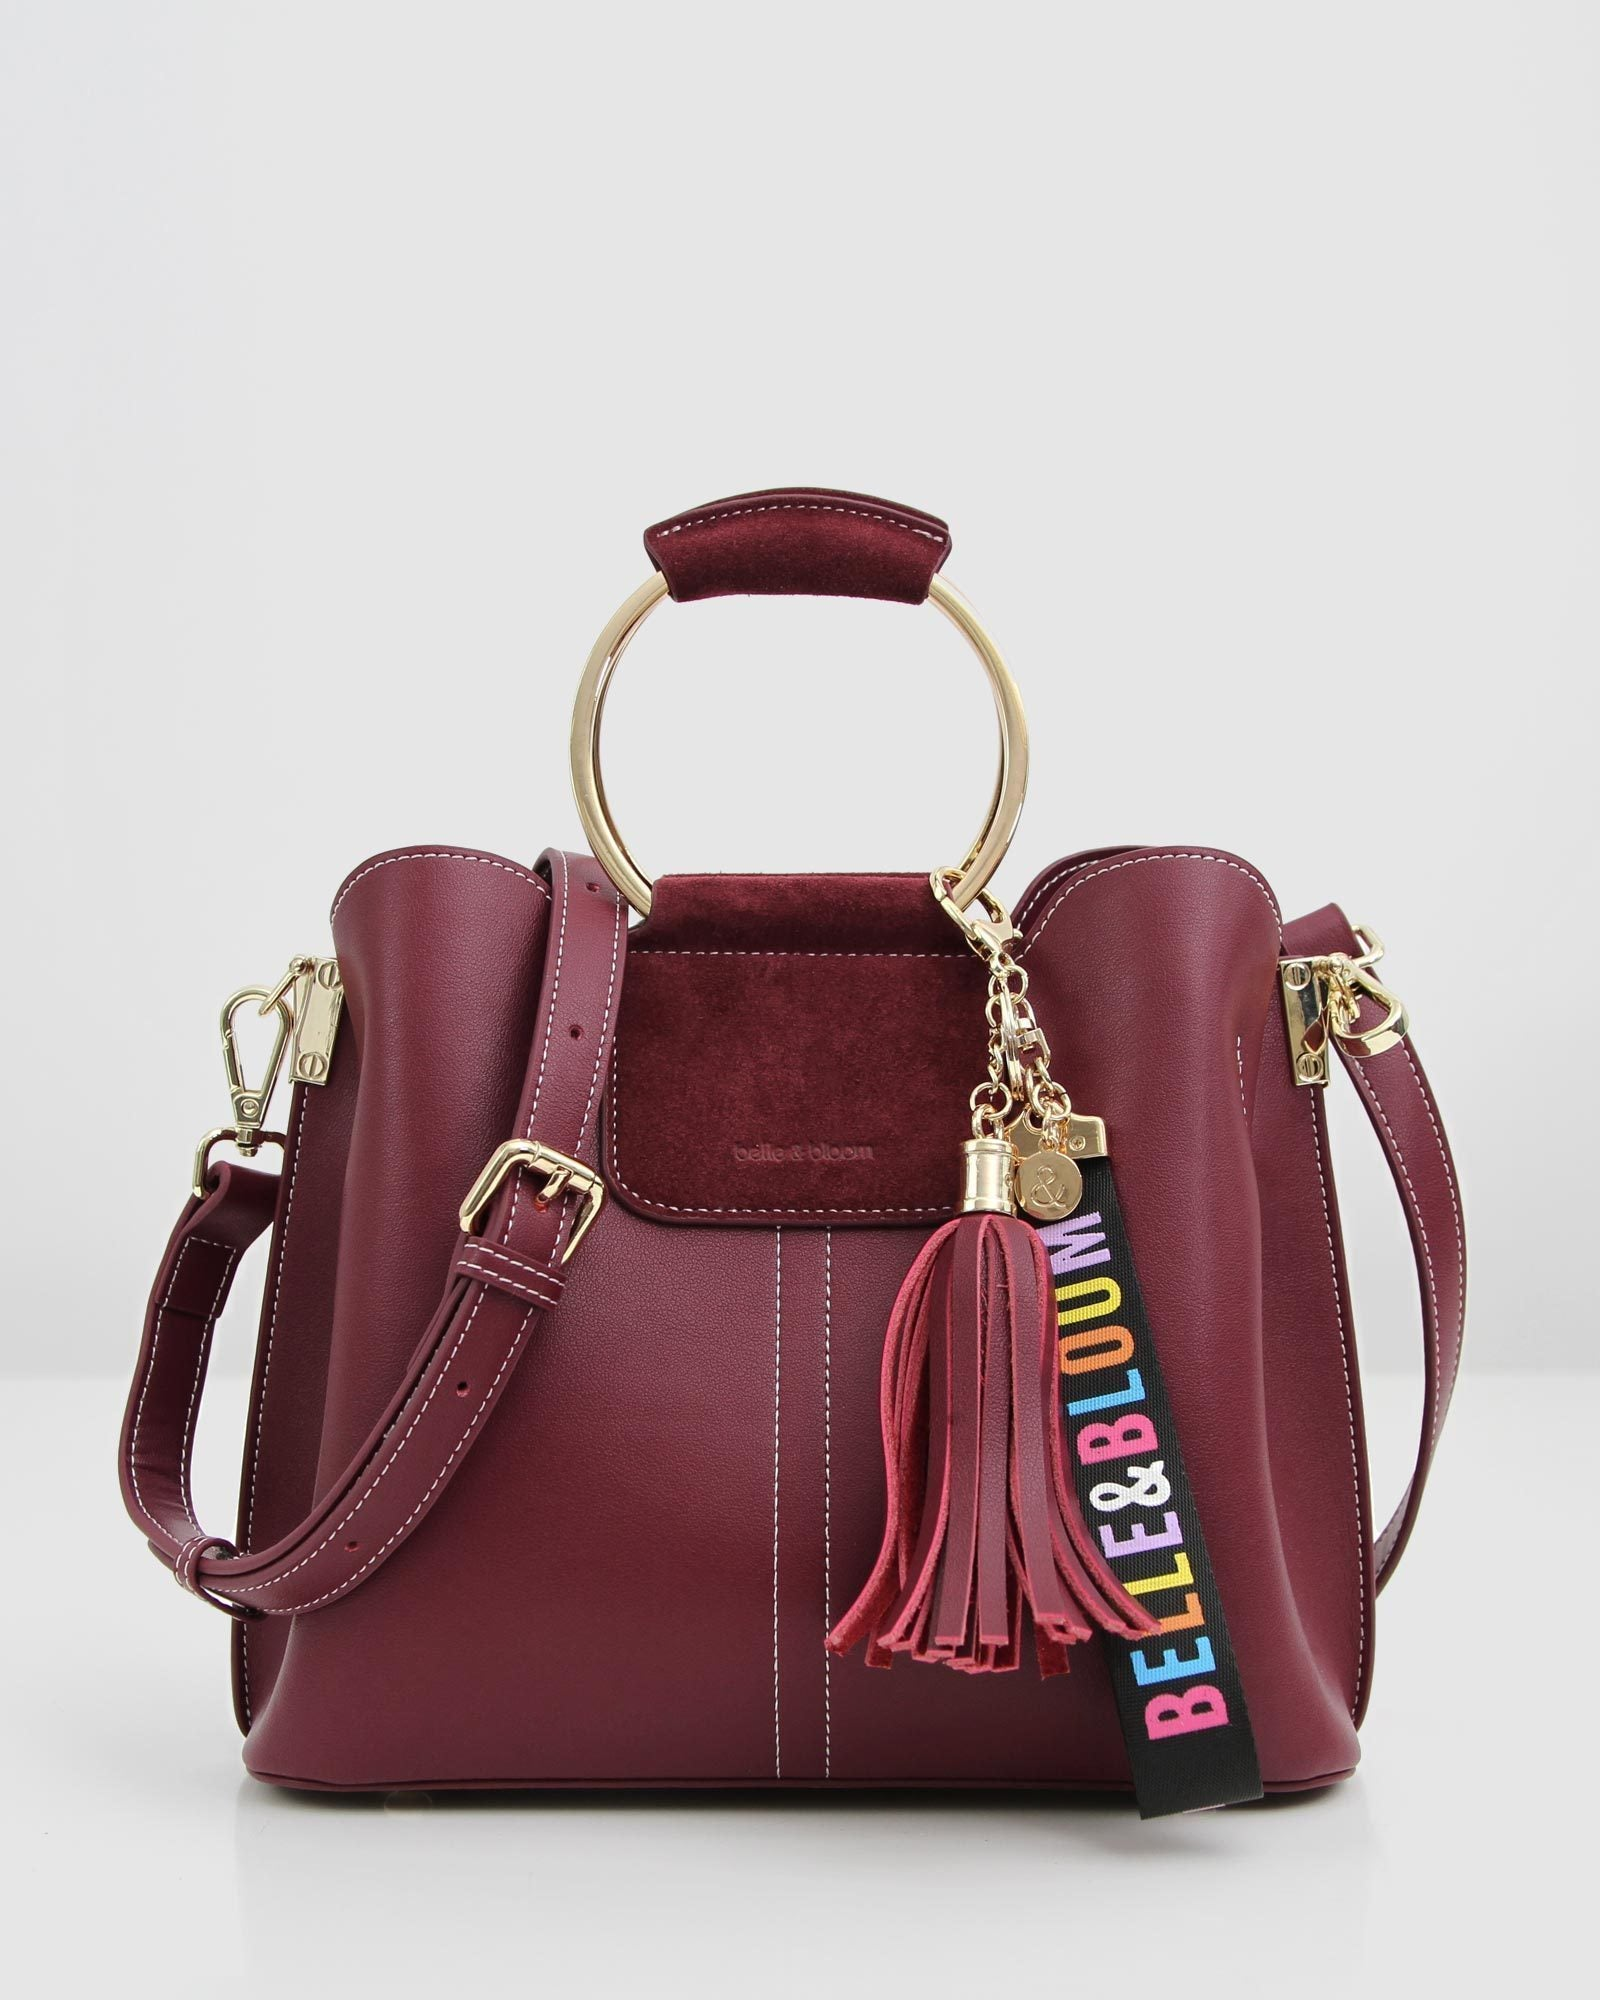 Twilight Leather Cross-Body Bag - Wine